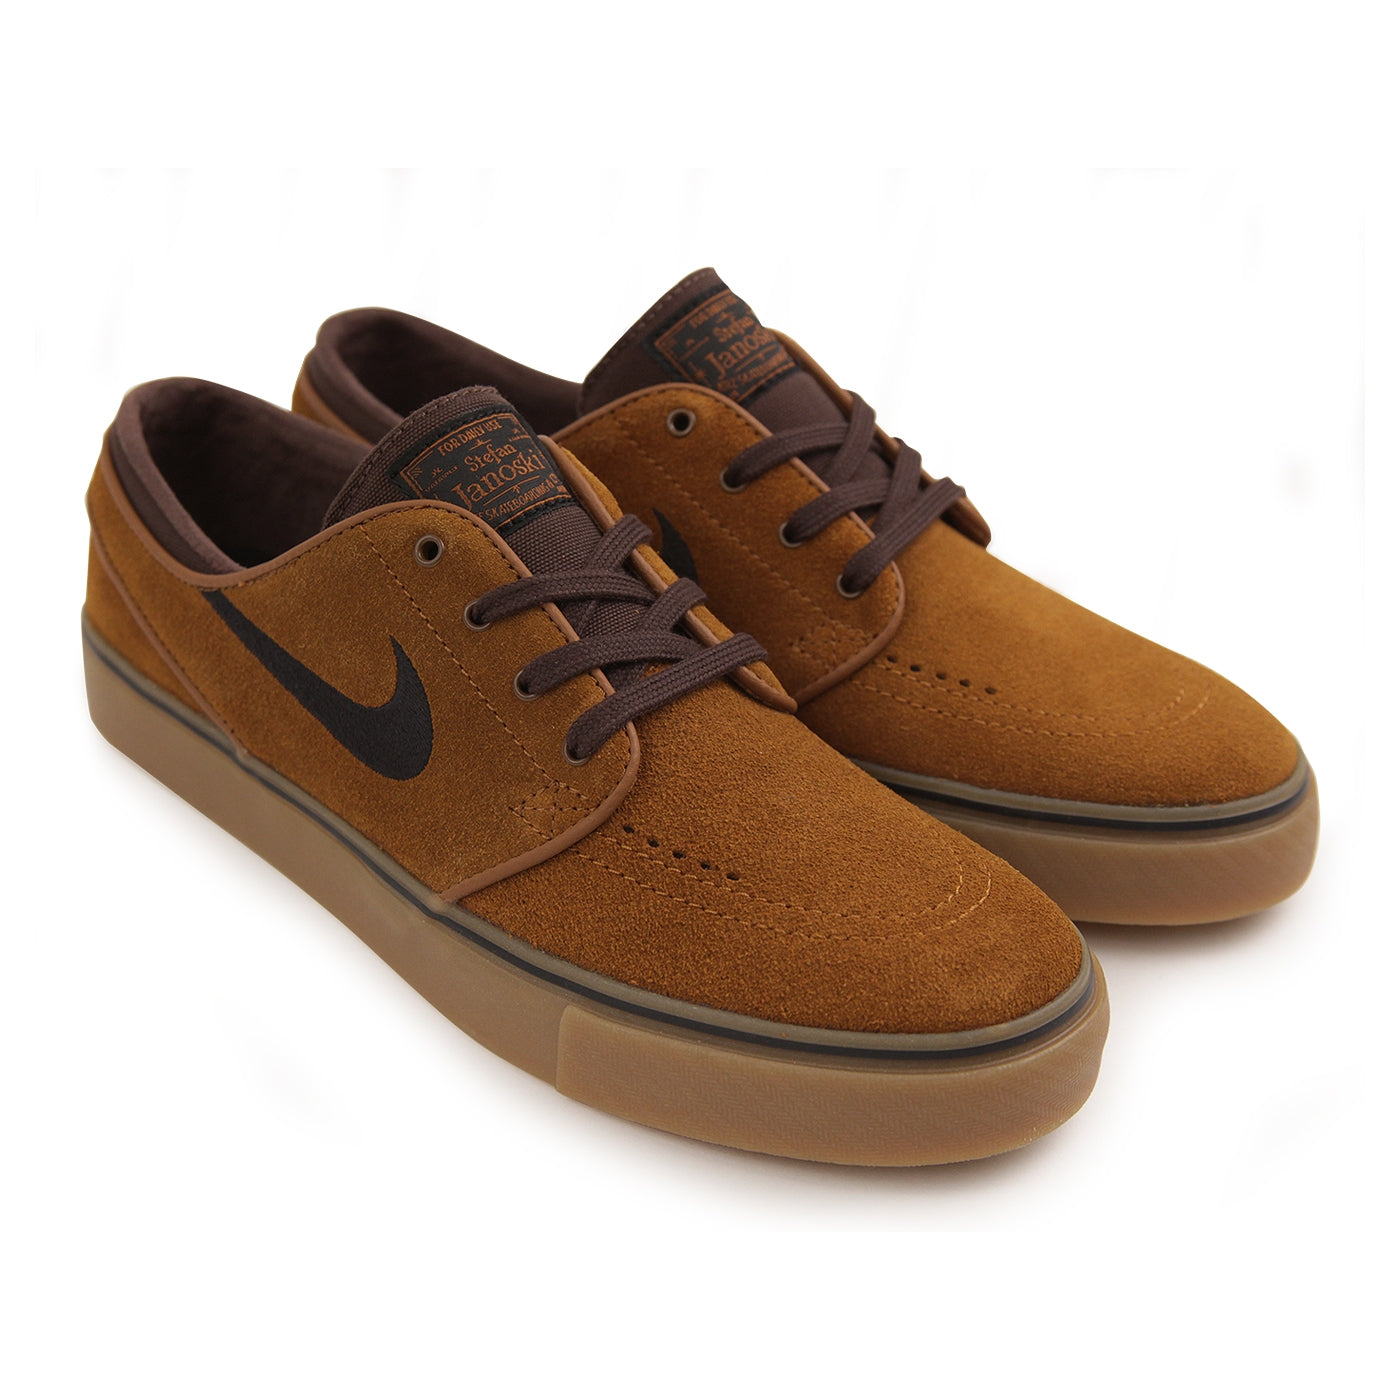 official photos 9835c 21402 Stefan Janoski Skate Shoes in Hazelnut   Black - Baroque Brown by ...